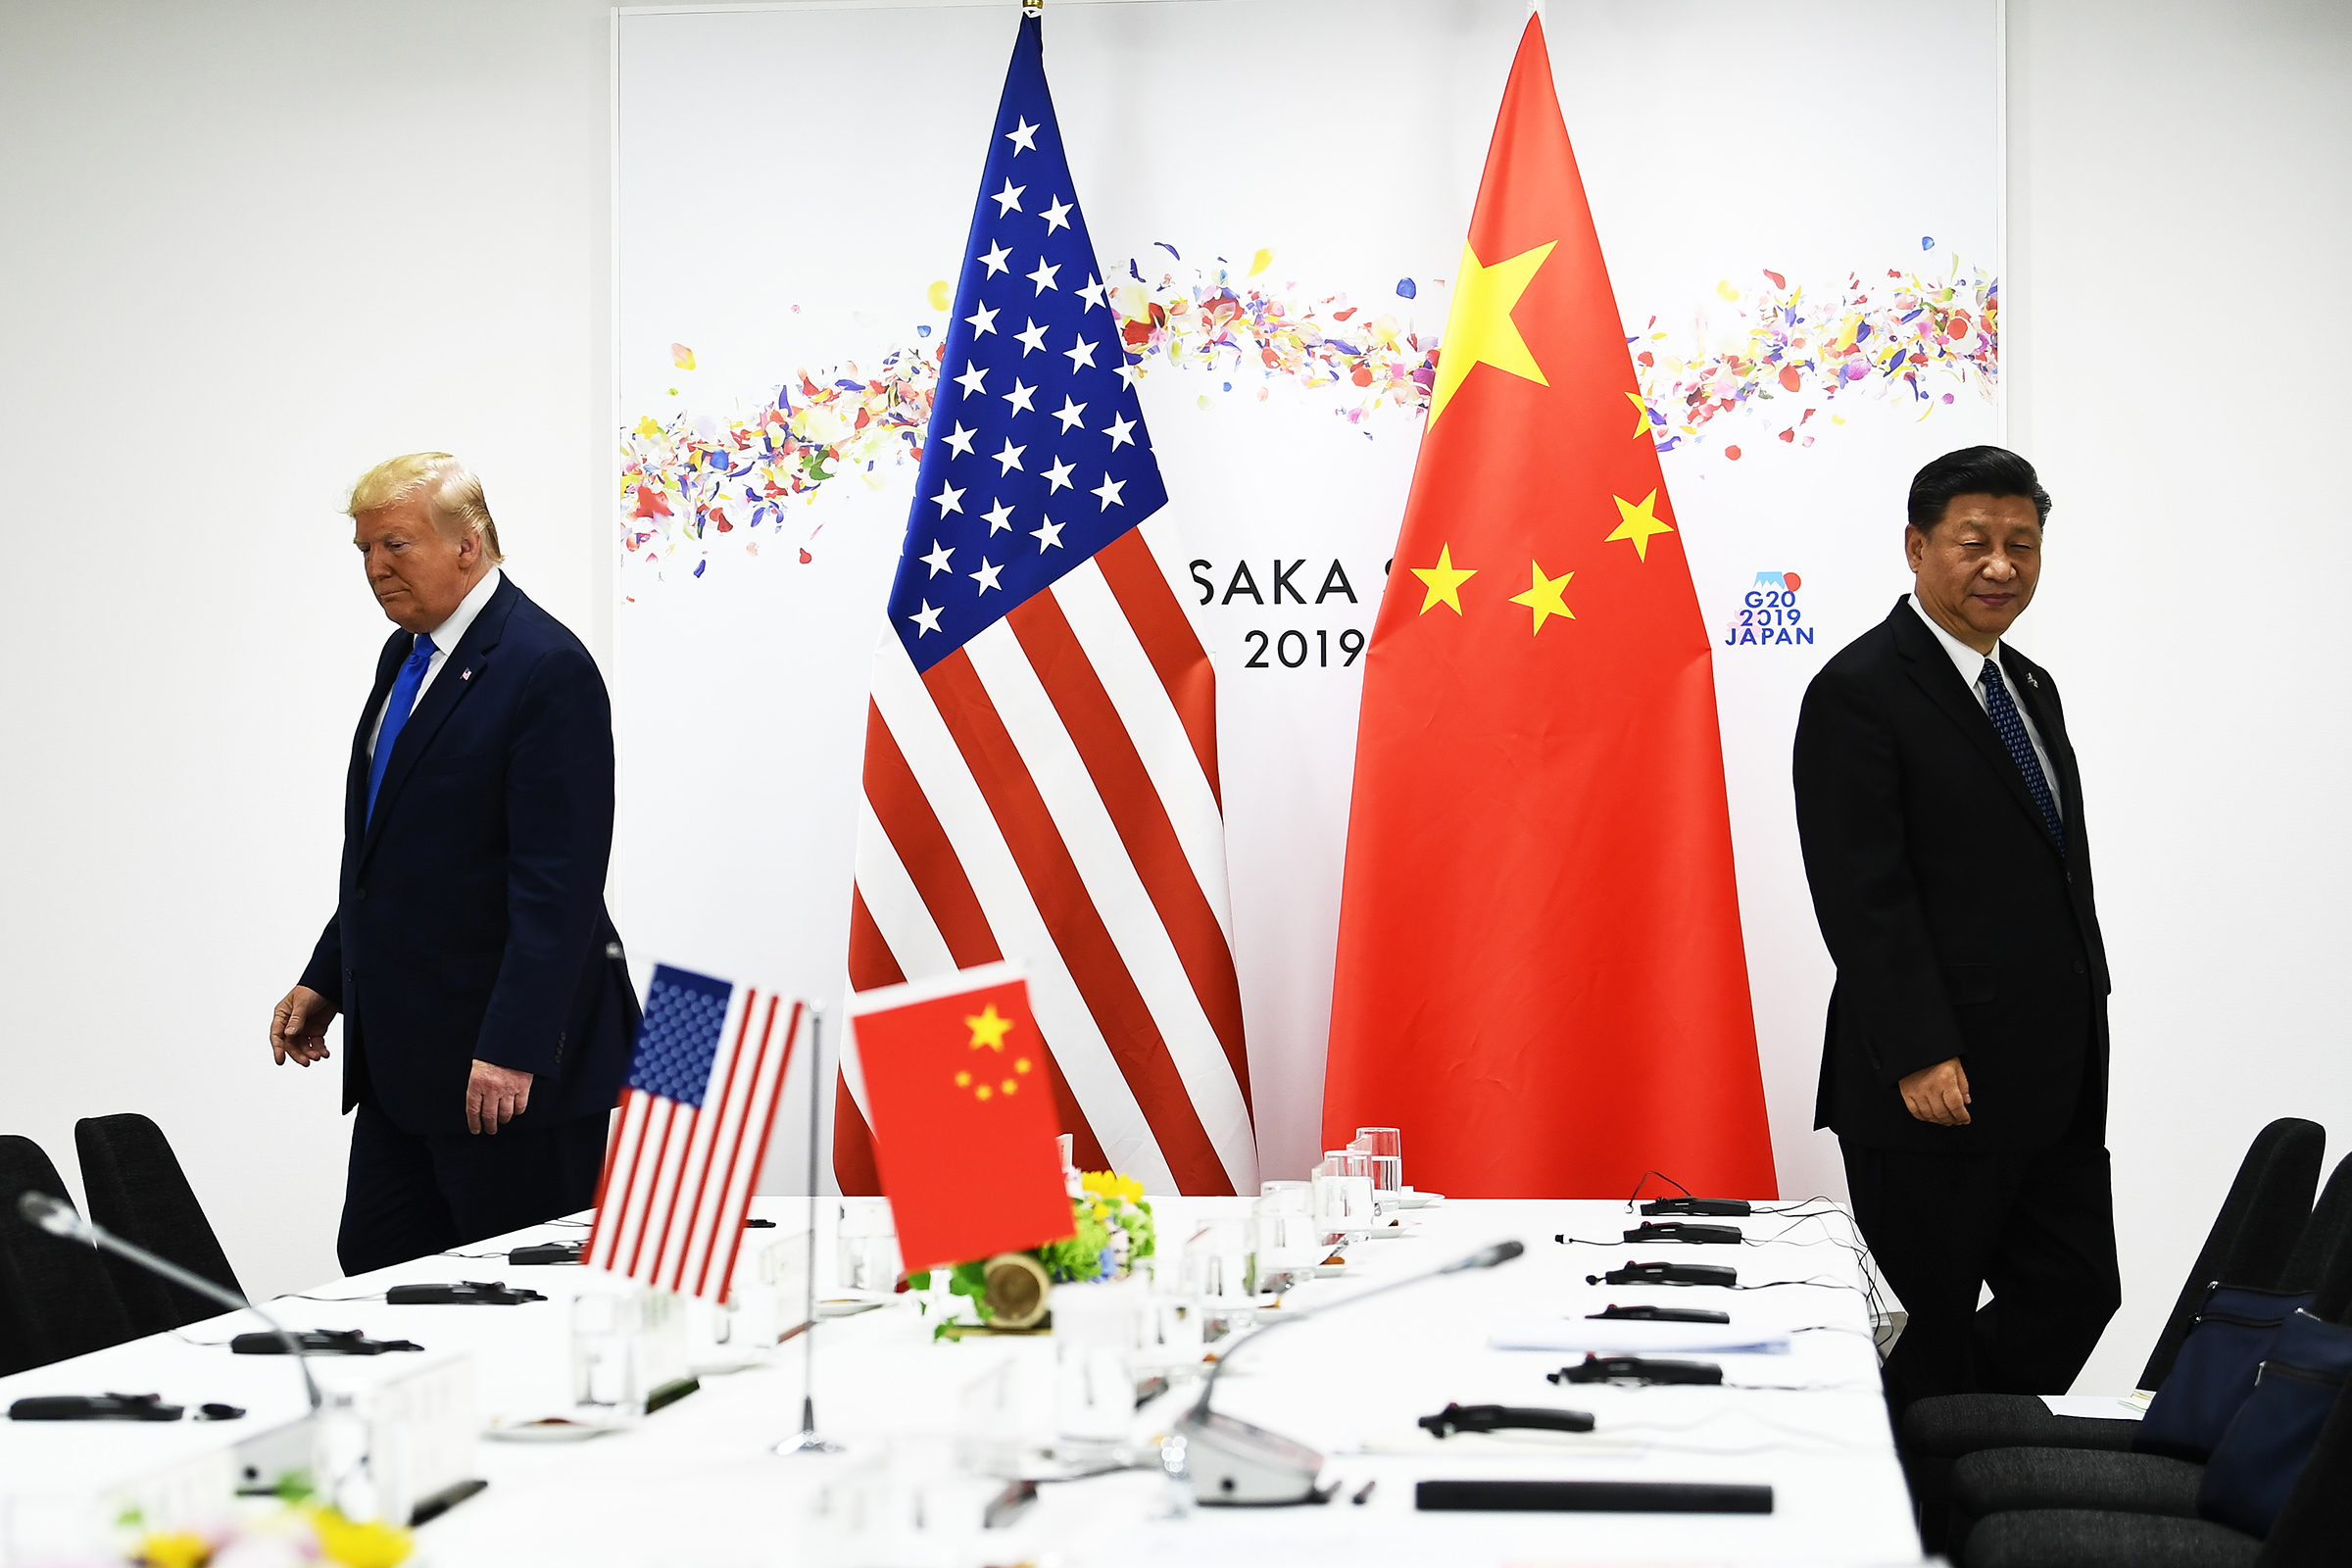 Chinese President Xi Jinping and US President Donald Trump attend their bilateral meeting on the sidelines of the G20 Summit in Osaka on June 29, 2019.